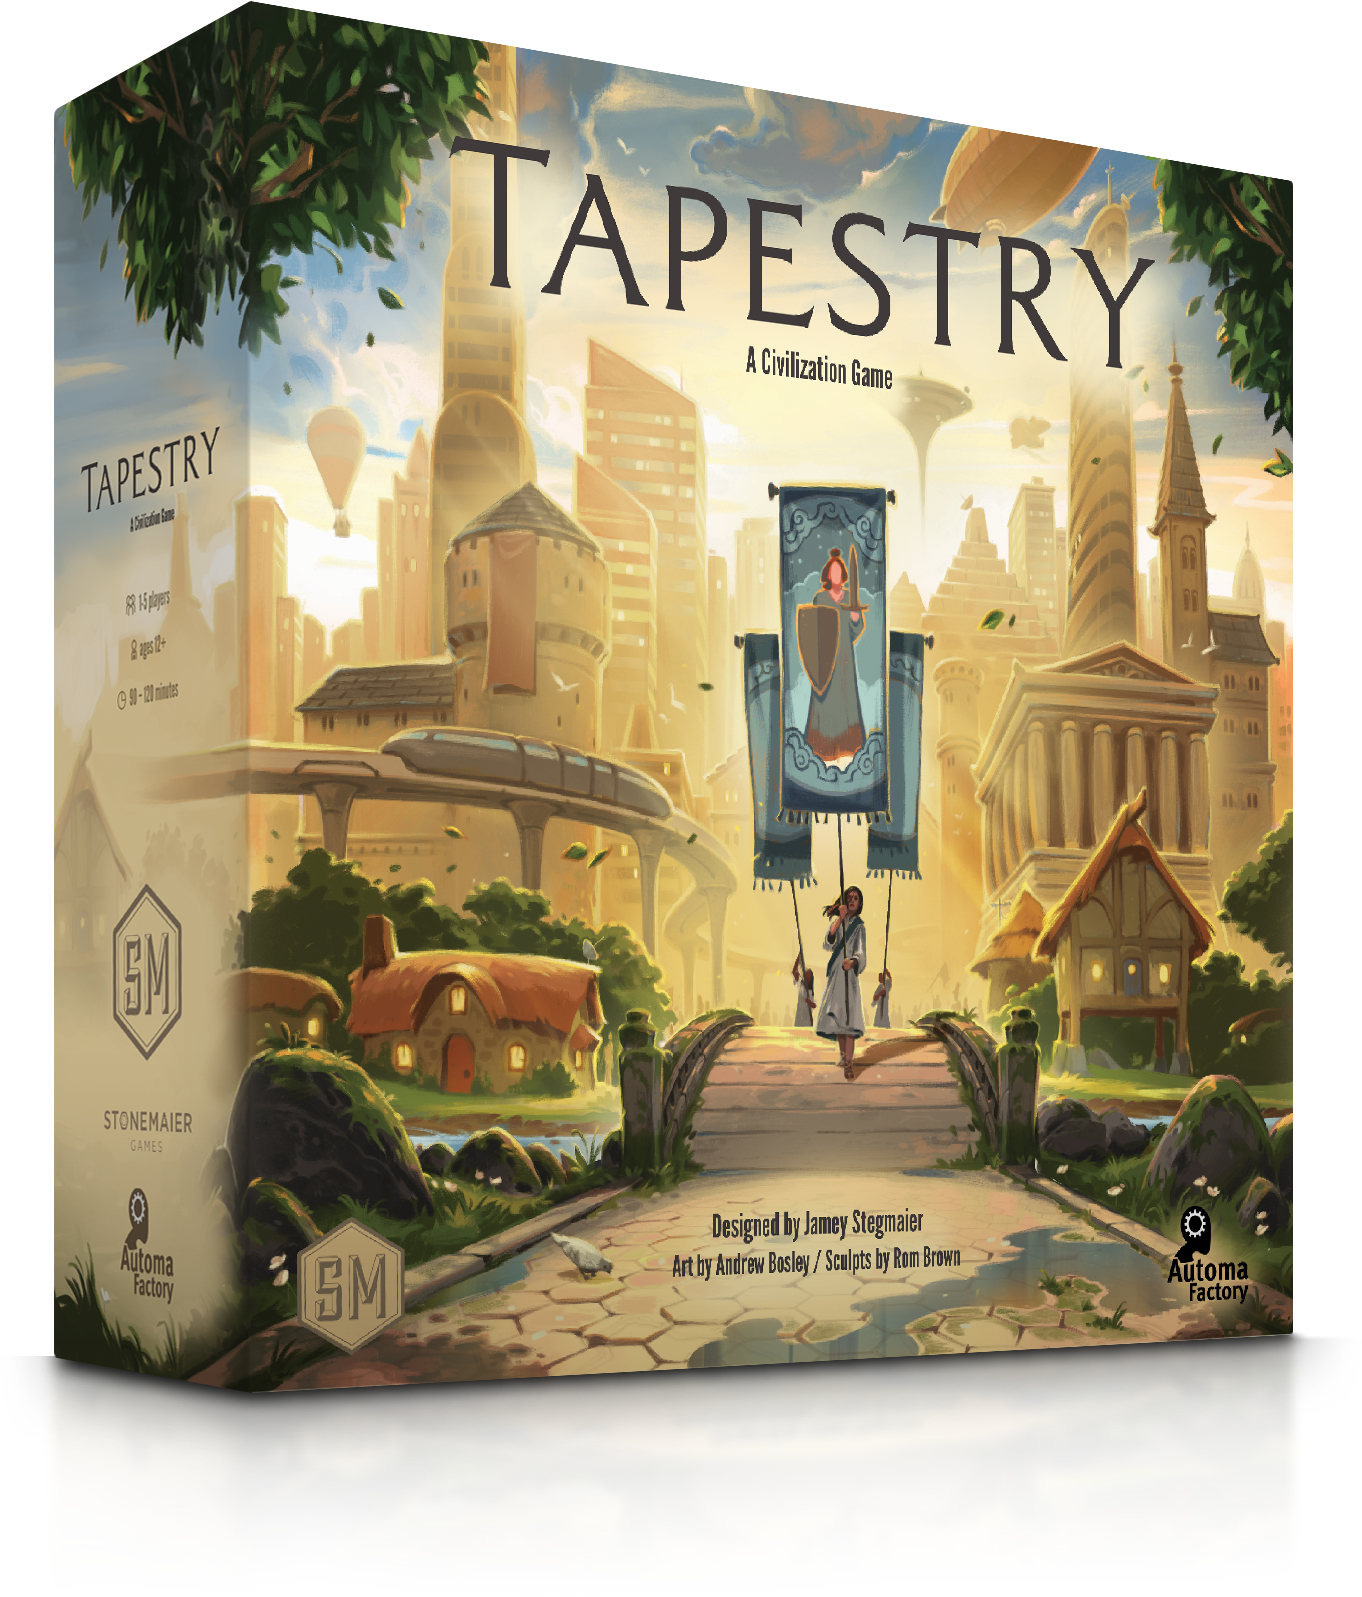 Tapestry Stonemaier Games